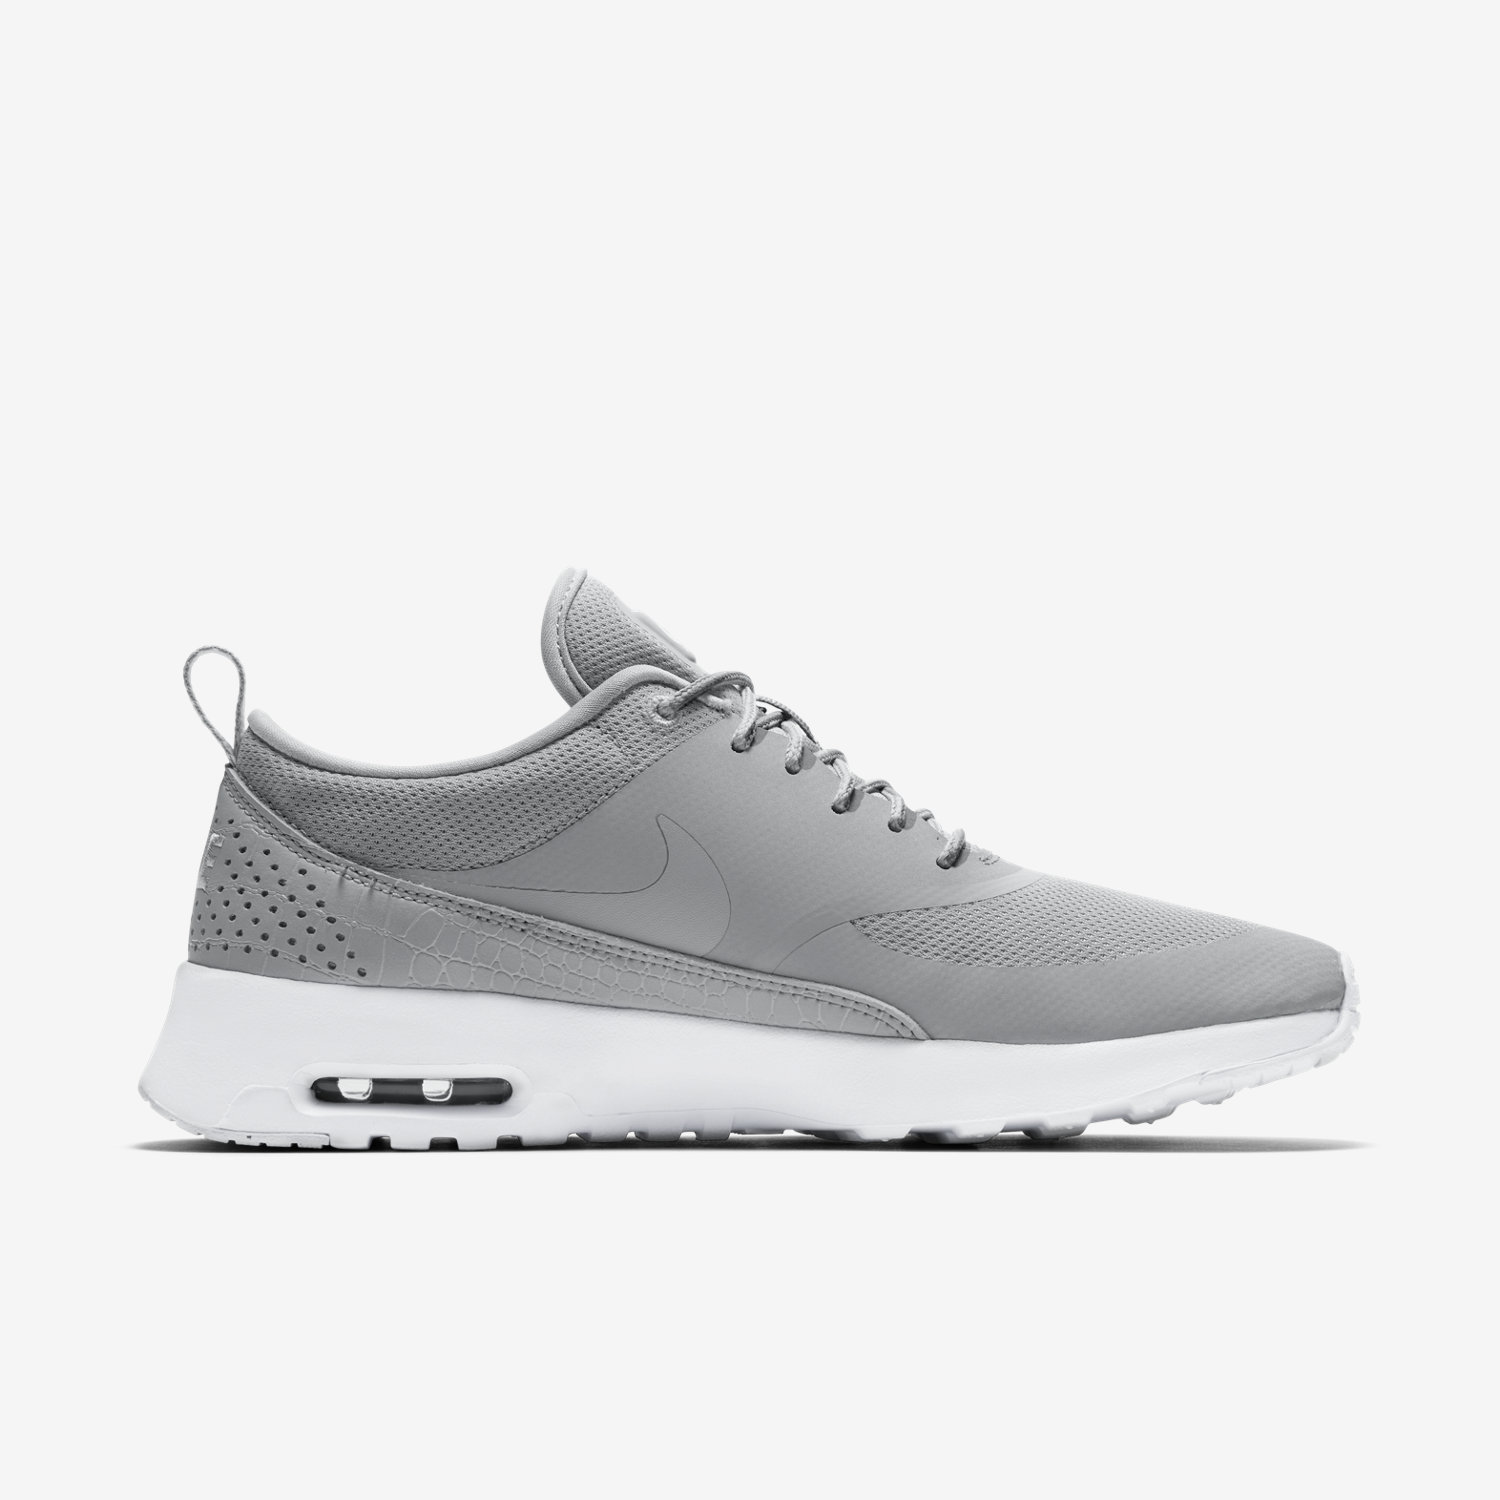 low priced 00643 840a7 ... Nike Air Max Thea Black Wolf Grey White - Office Girl ...